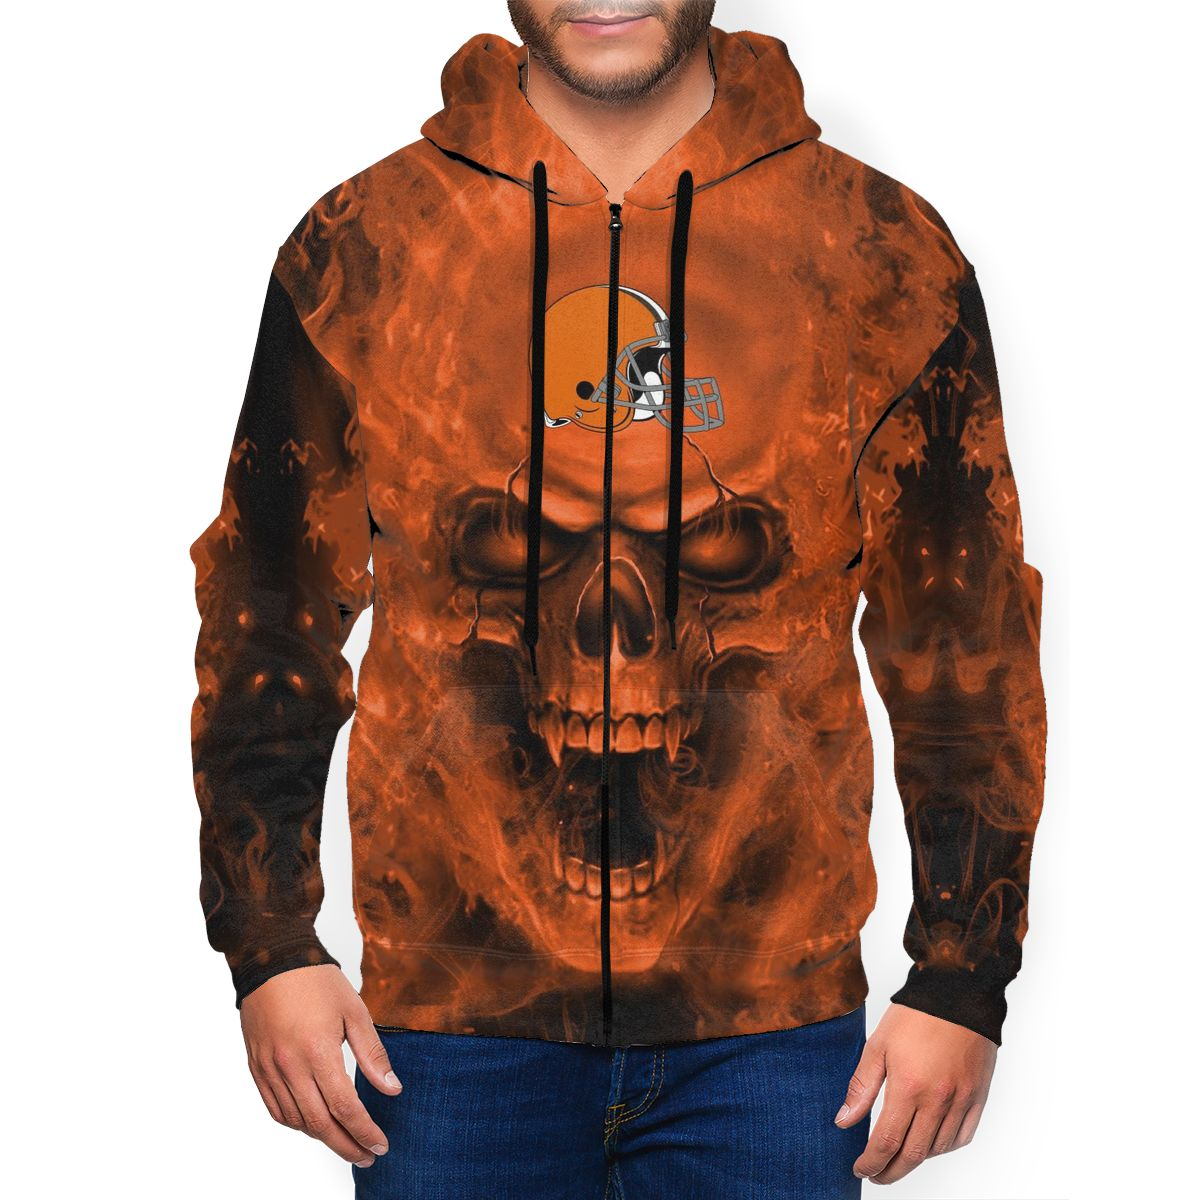 3D Skull Browns Men's Zip Hooded Sweatshirt